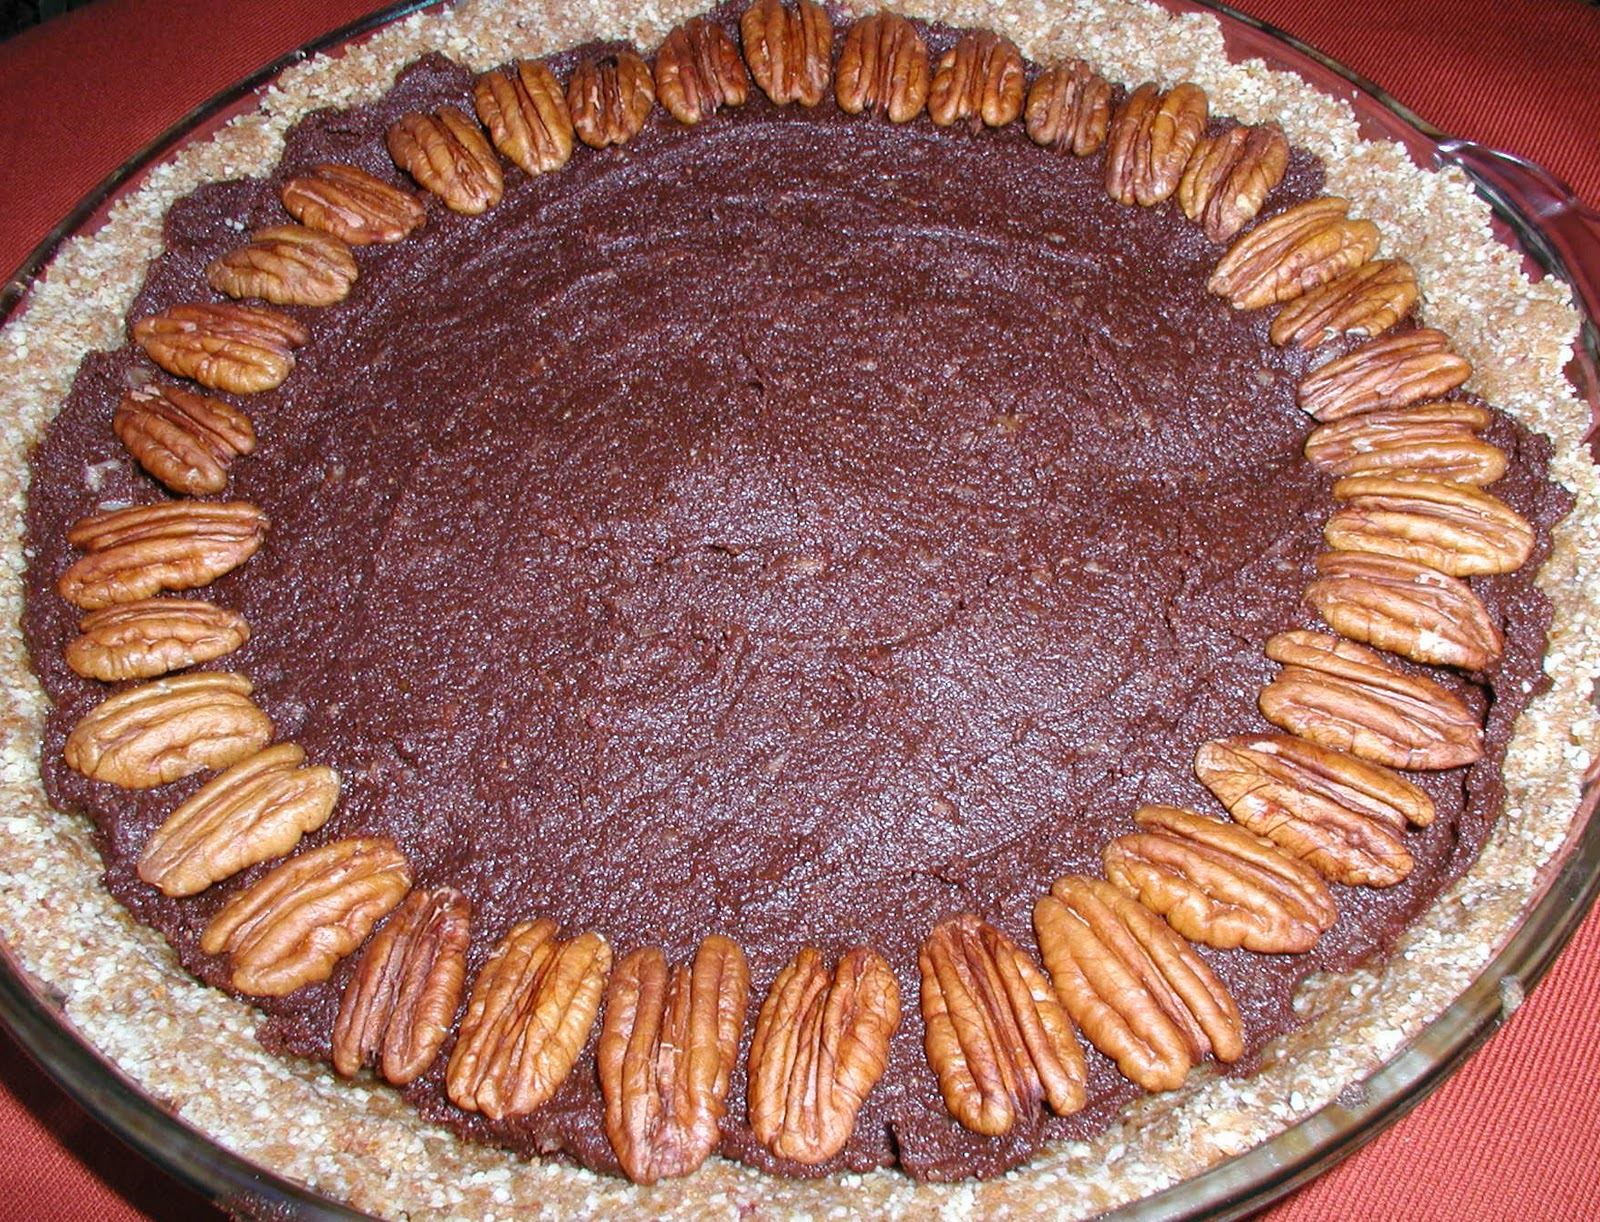 Raw German Chocolate Pecan Pie or Raw Chocolate Pecan Pie